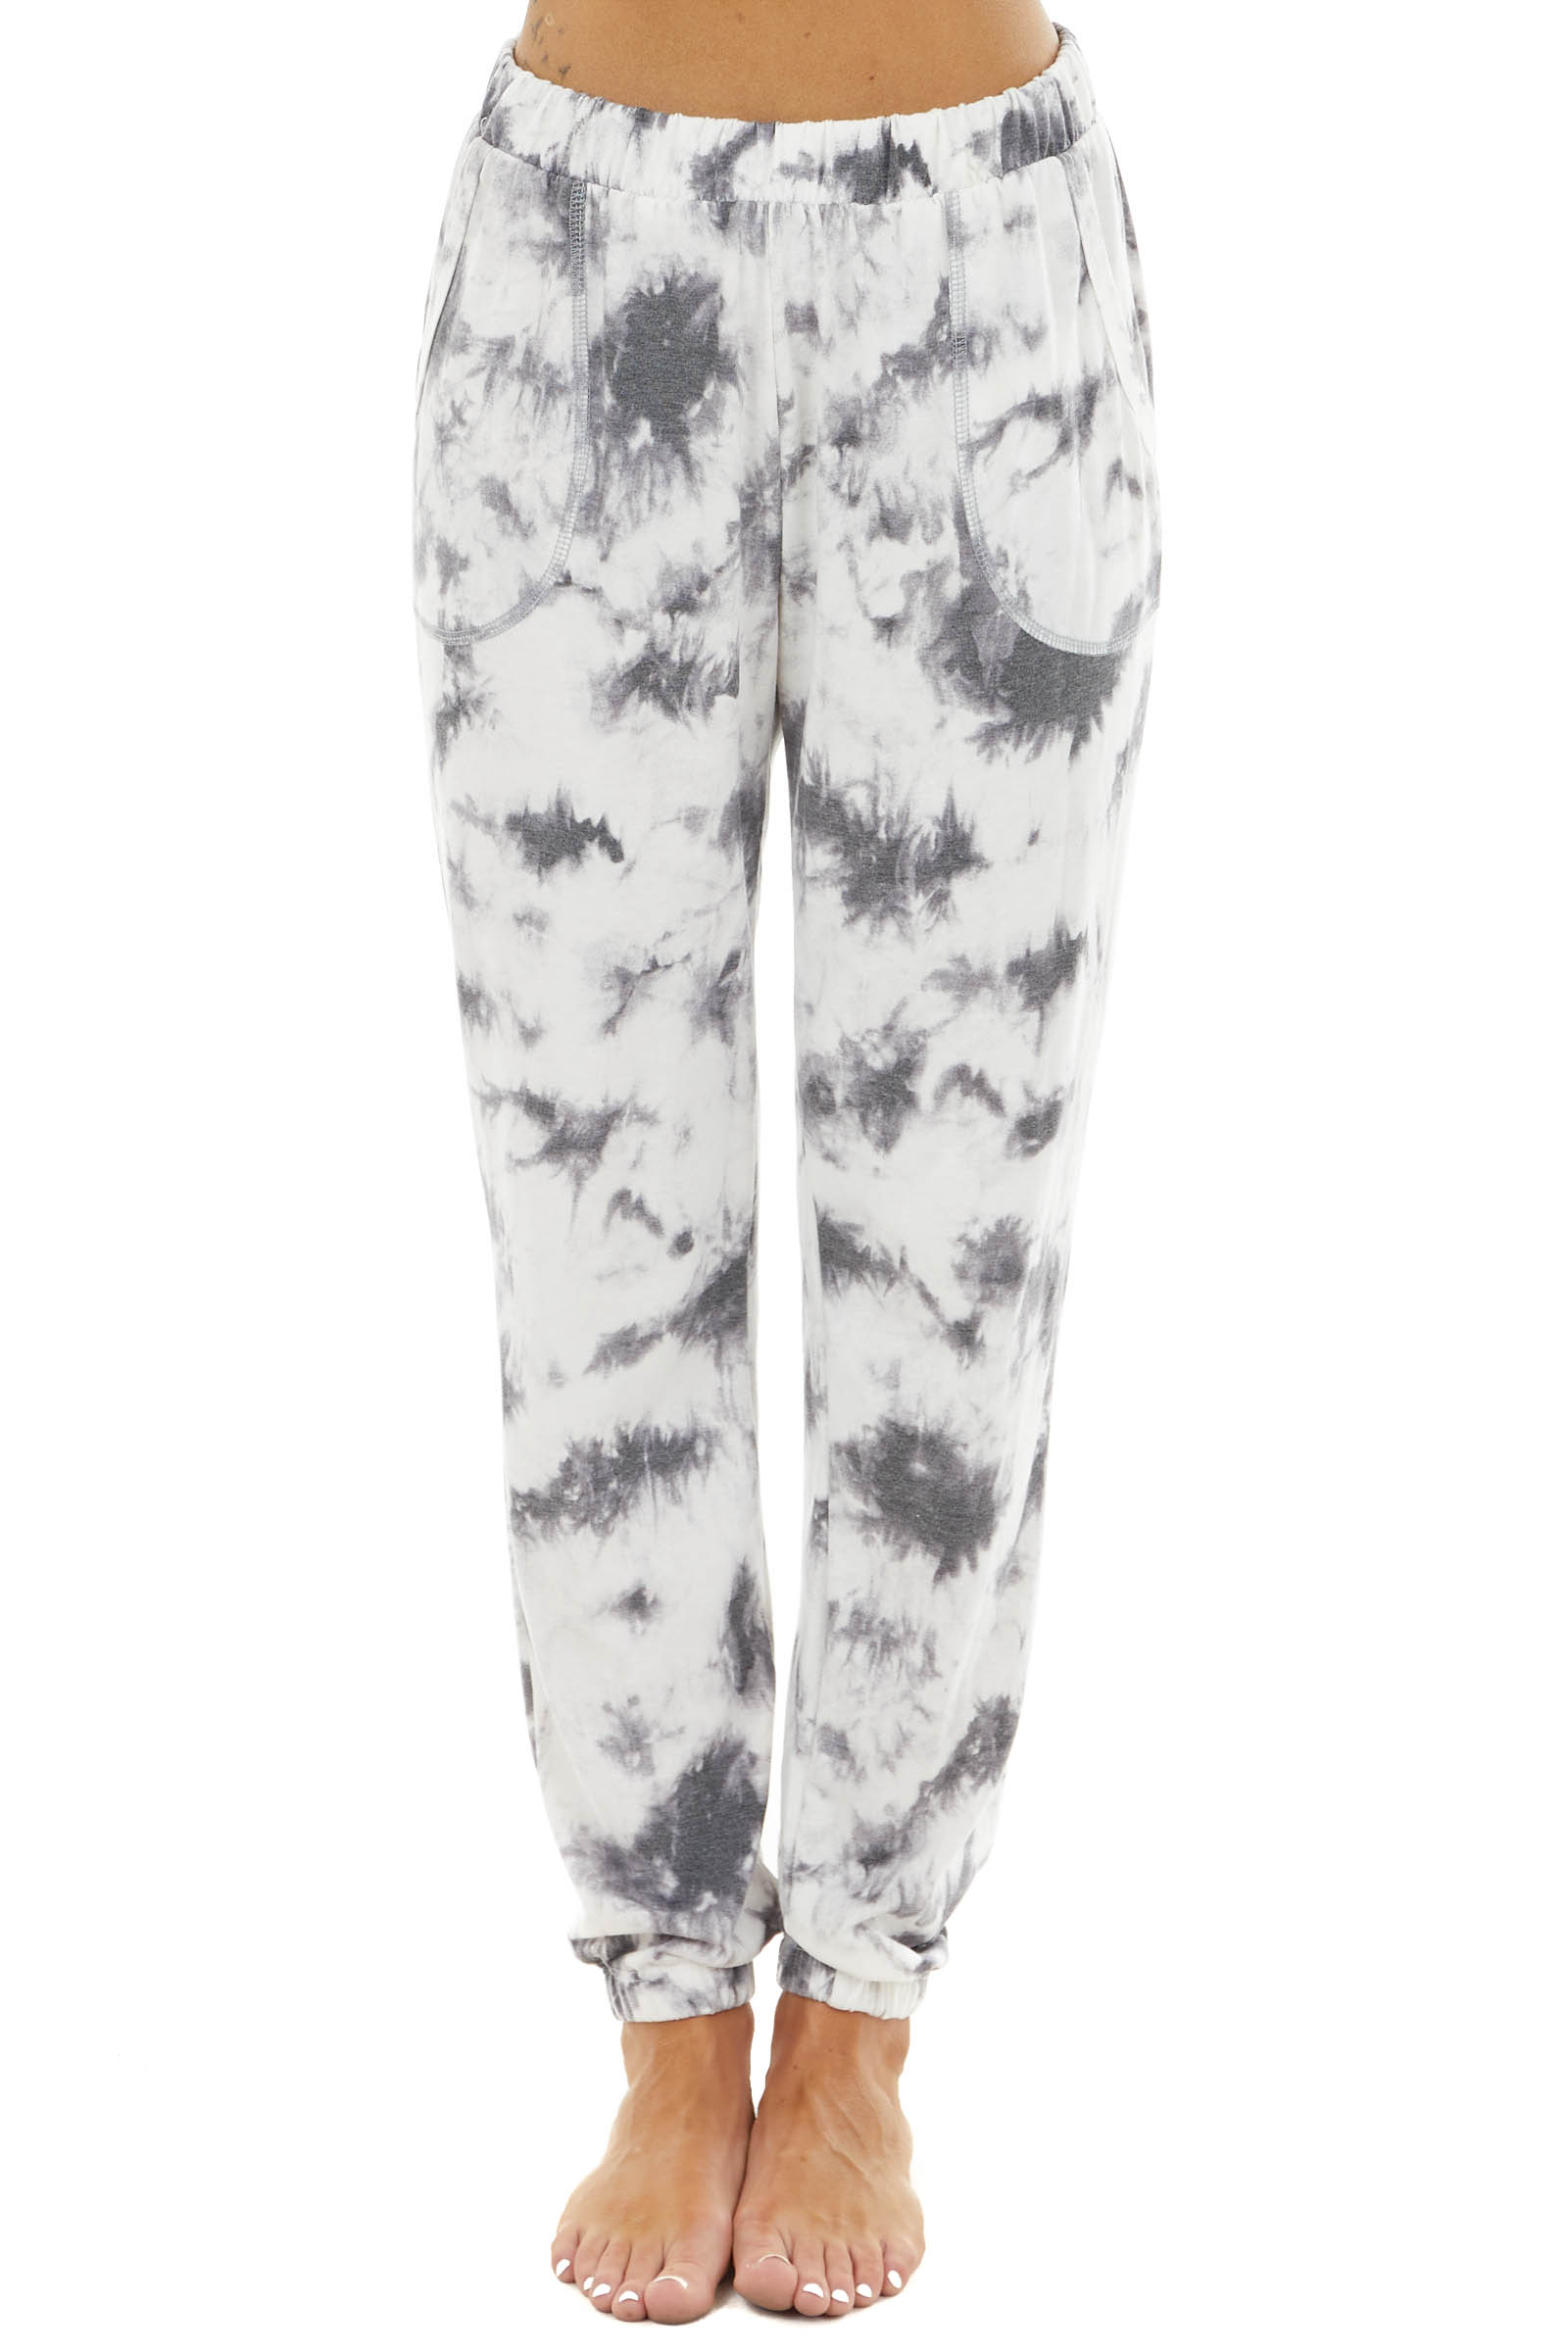 Charcoal Tie Dye Elastic Waist and Cuff Joggers with Pockets